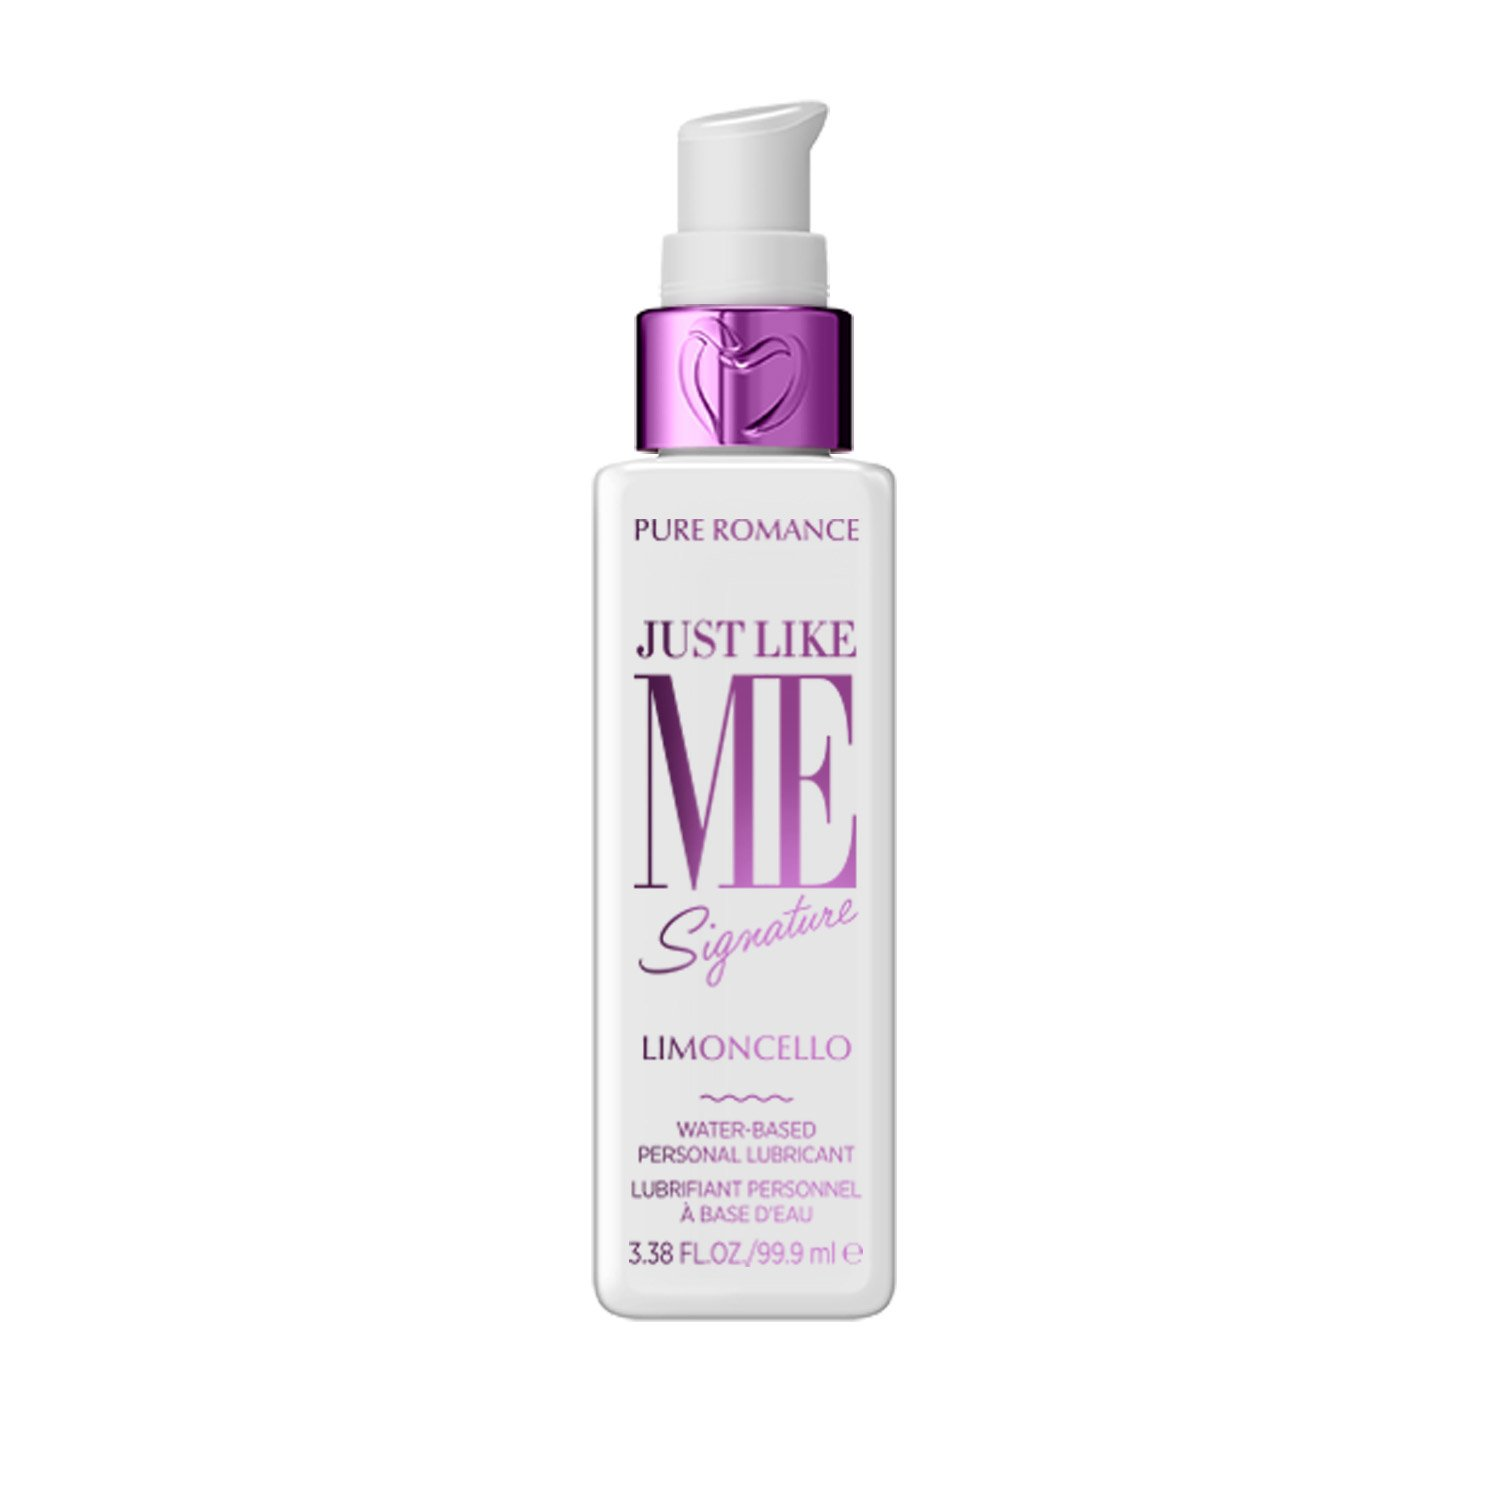 Just Like Me Natural Lubricant - Limoncello by Pure Romance